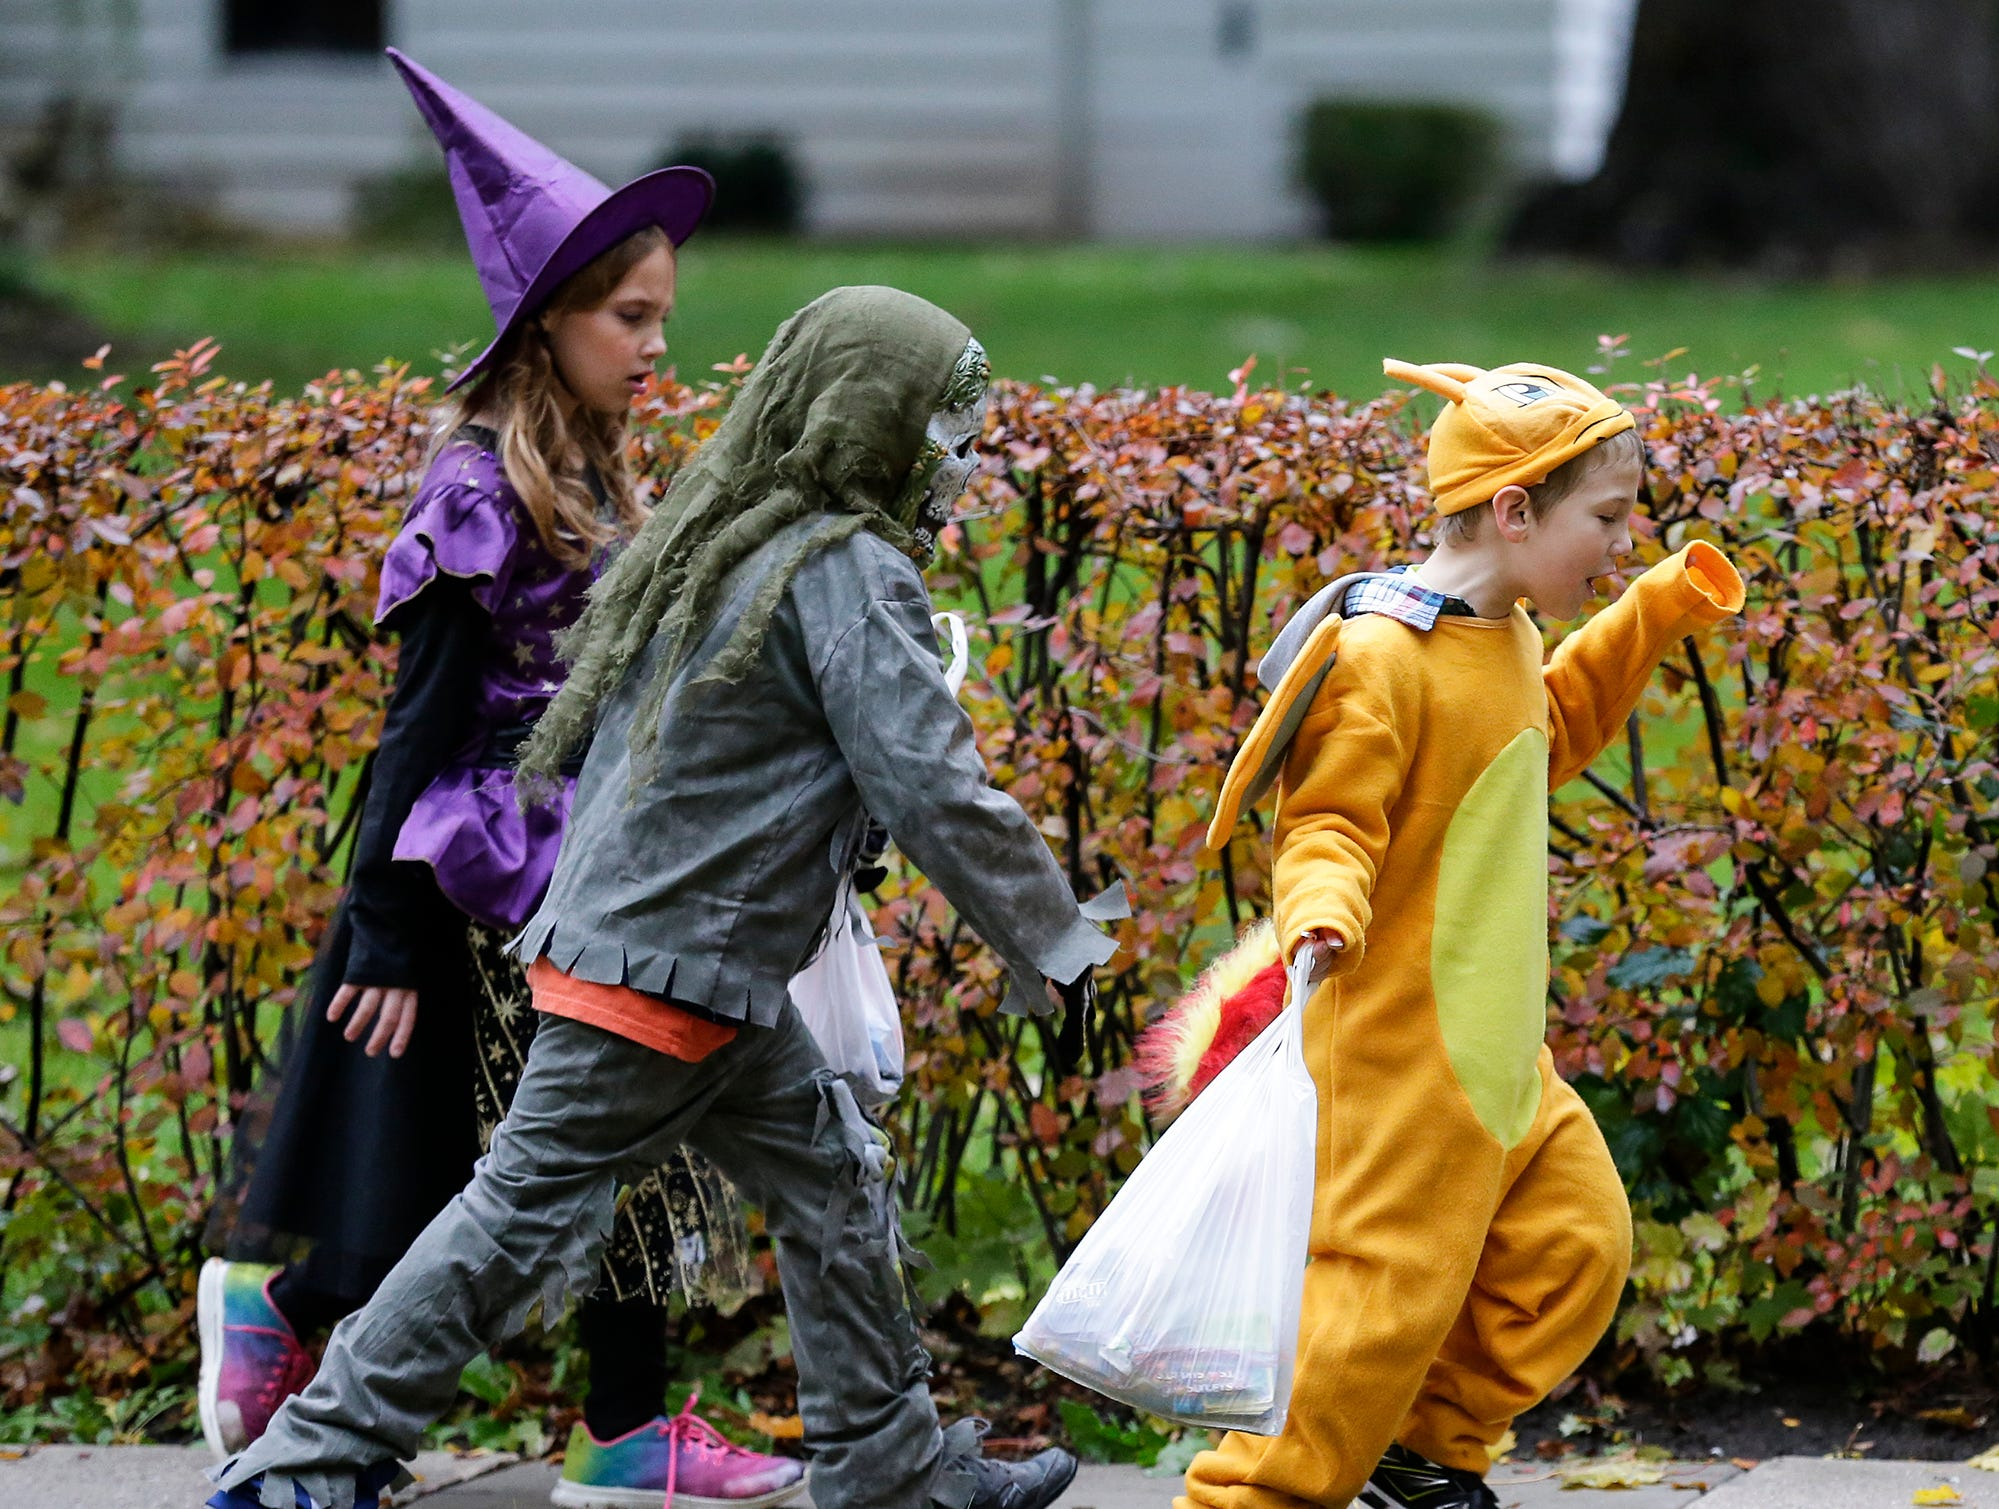 Maggie Burk, Damian Smith and Finnigan Burk of Fond du Lac were out trick or treating Sunday, October 28, 2018 in Fond du Lac, Wisconsin. Doug Raflik/USA TODAY NETWORK-Wisconsin